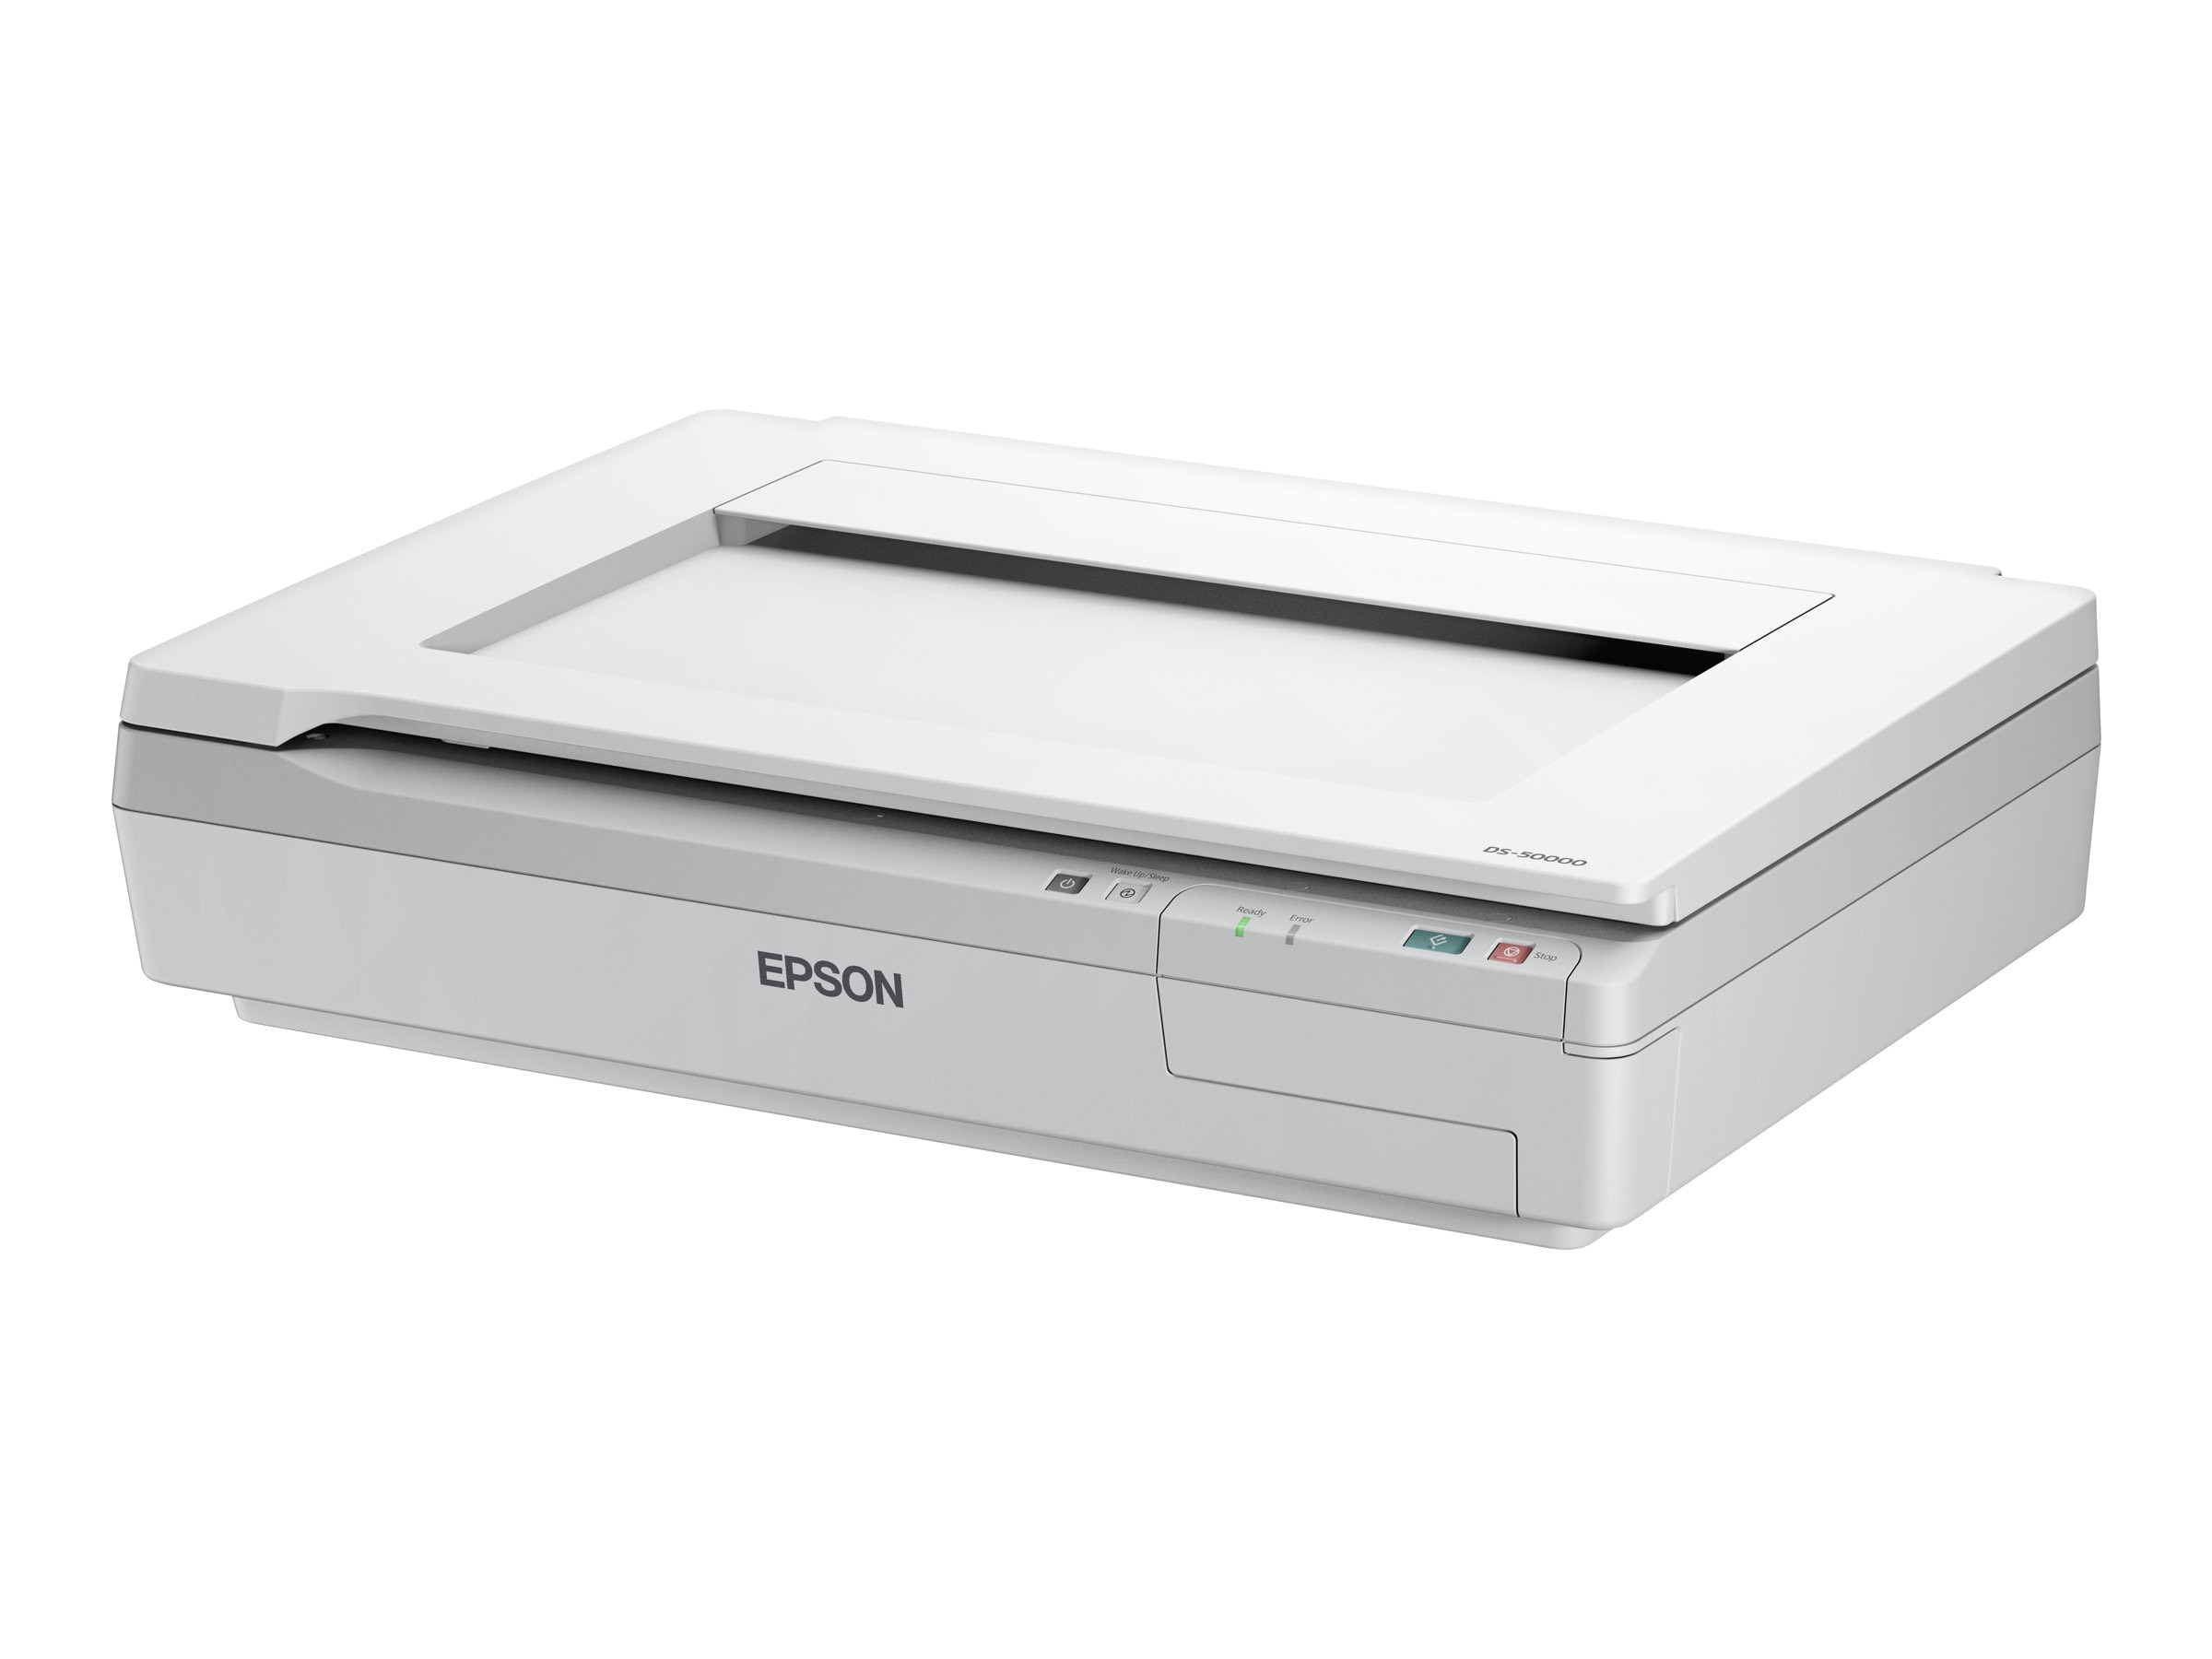 Epson Workforce DS-50000 Scanner - $1499 less instant rebate of $60.00